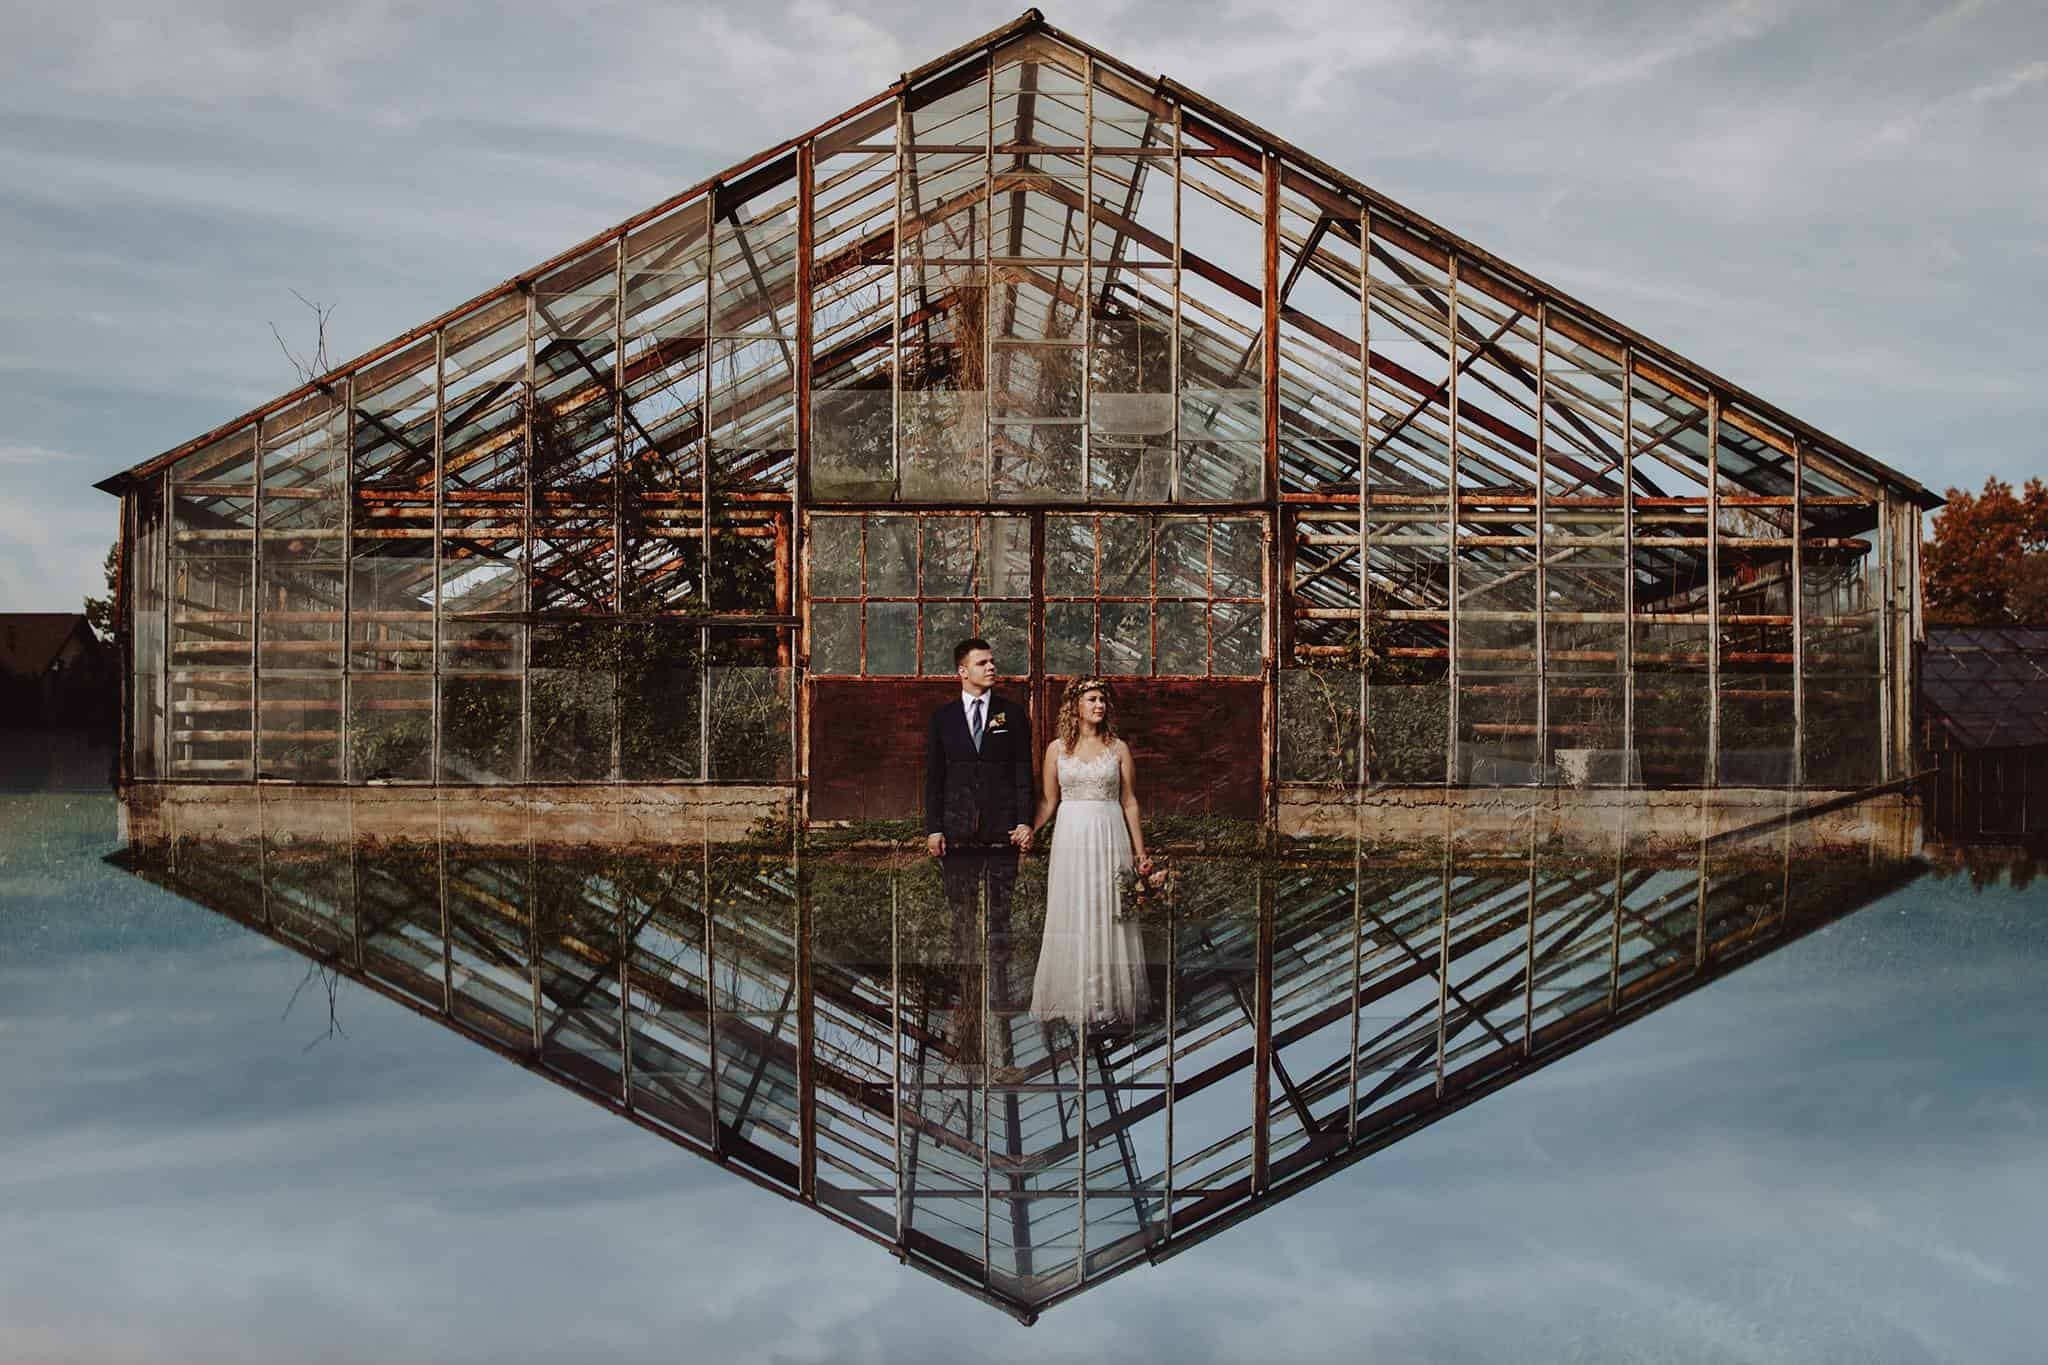 A couple standing in front of a greenhouse on their wedding day